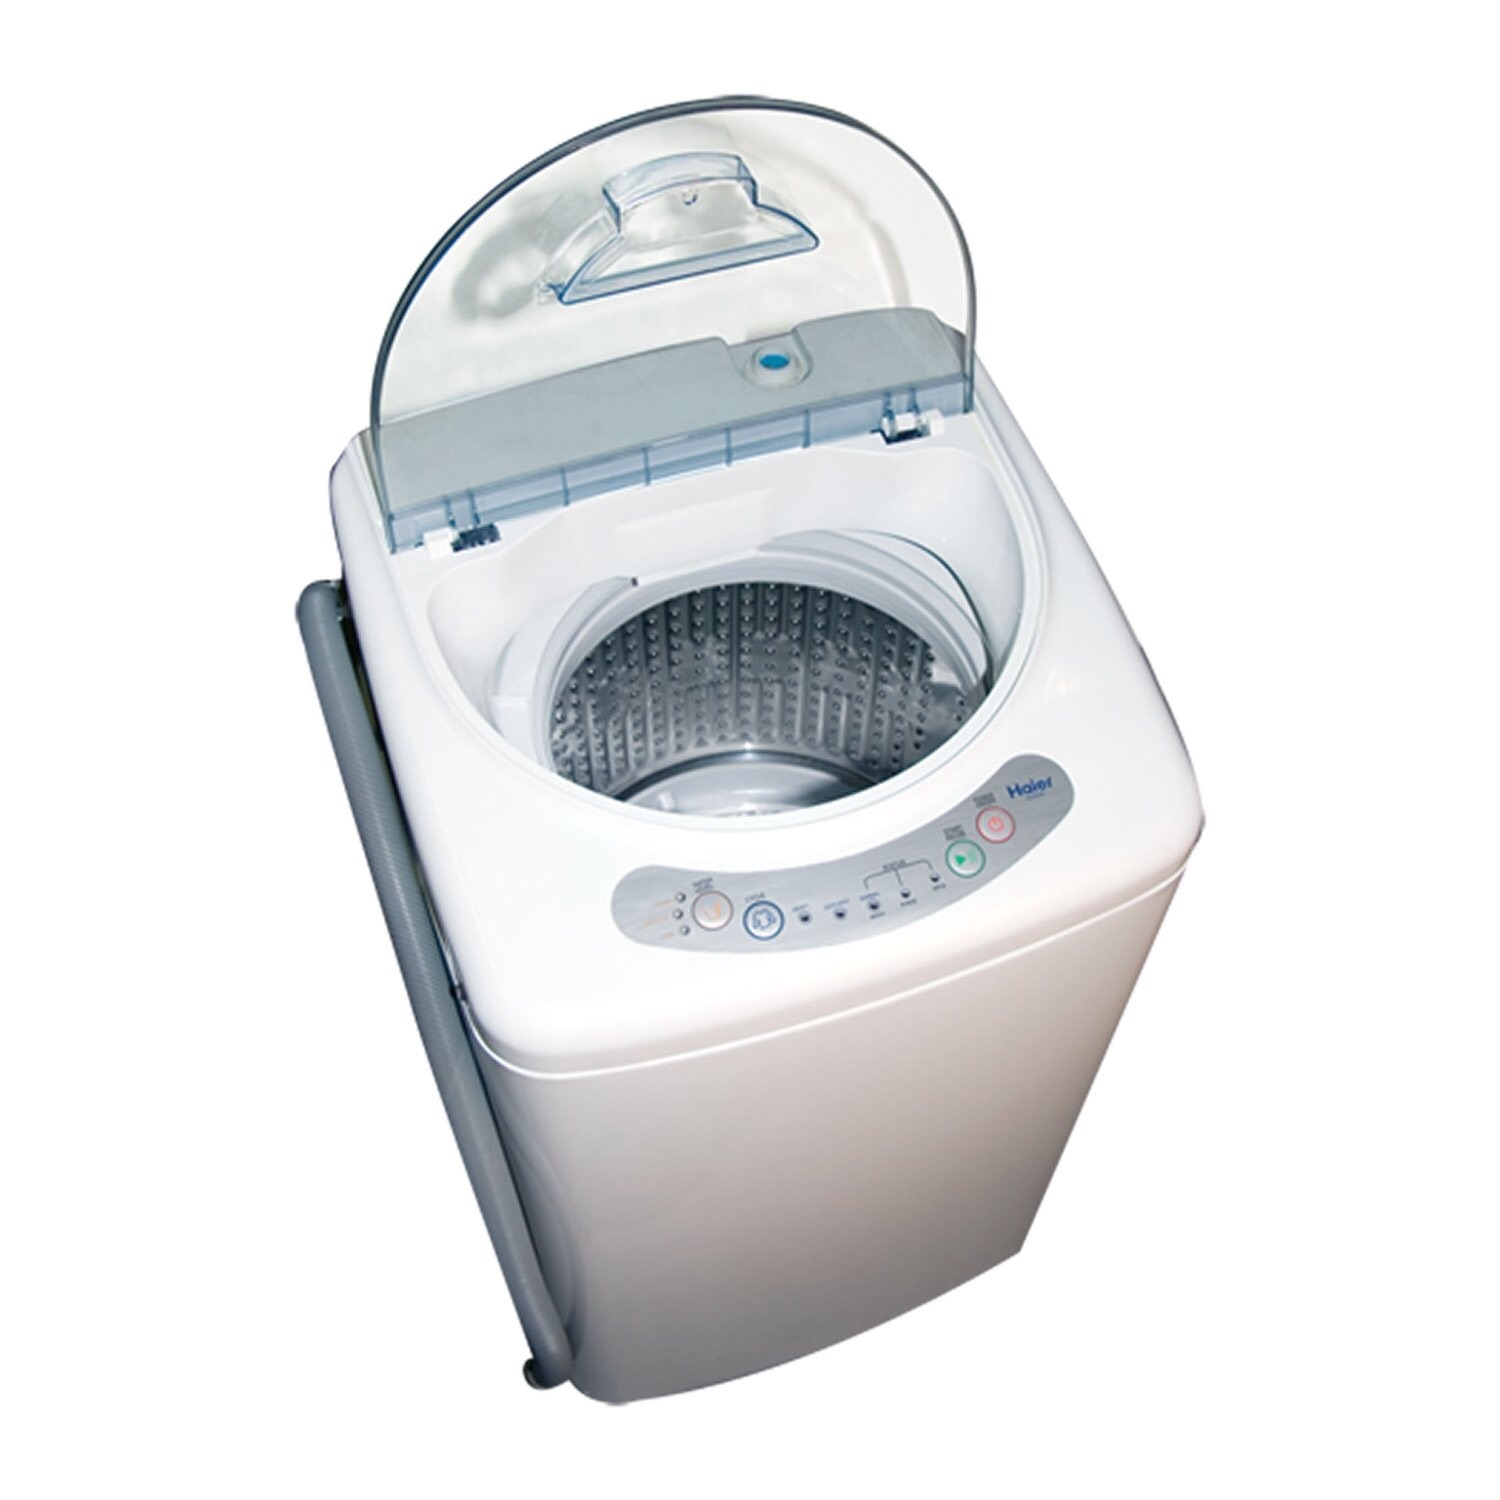 Regular Washer Vs He Washer Image